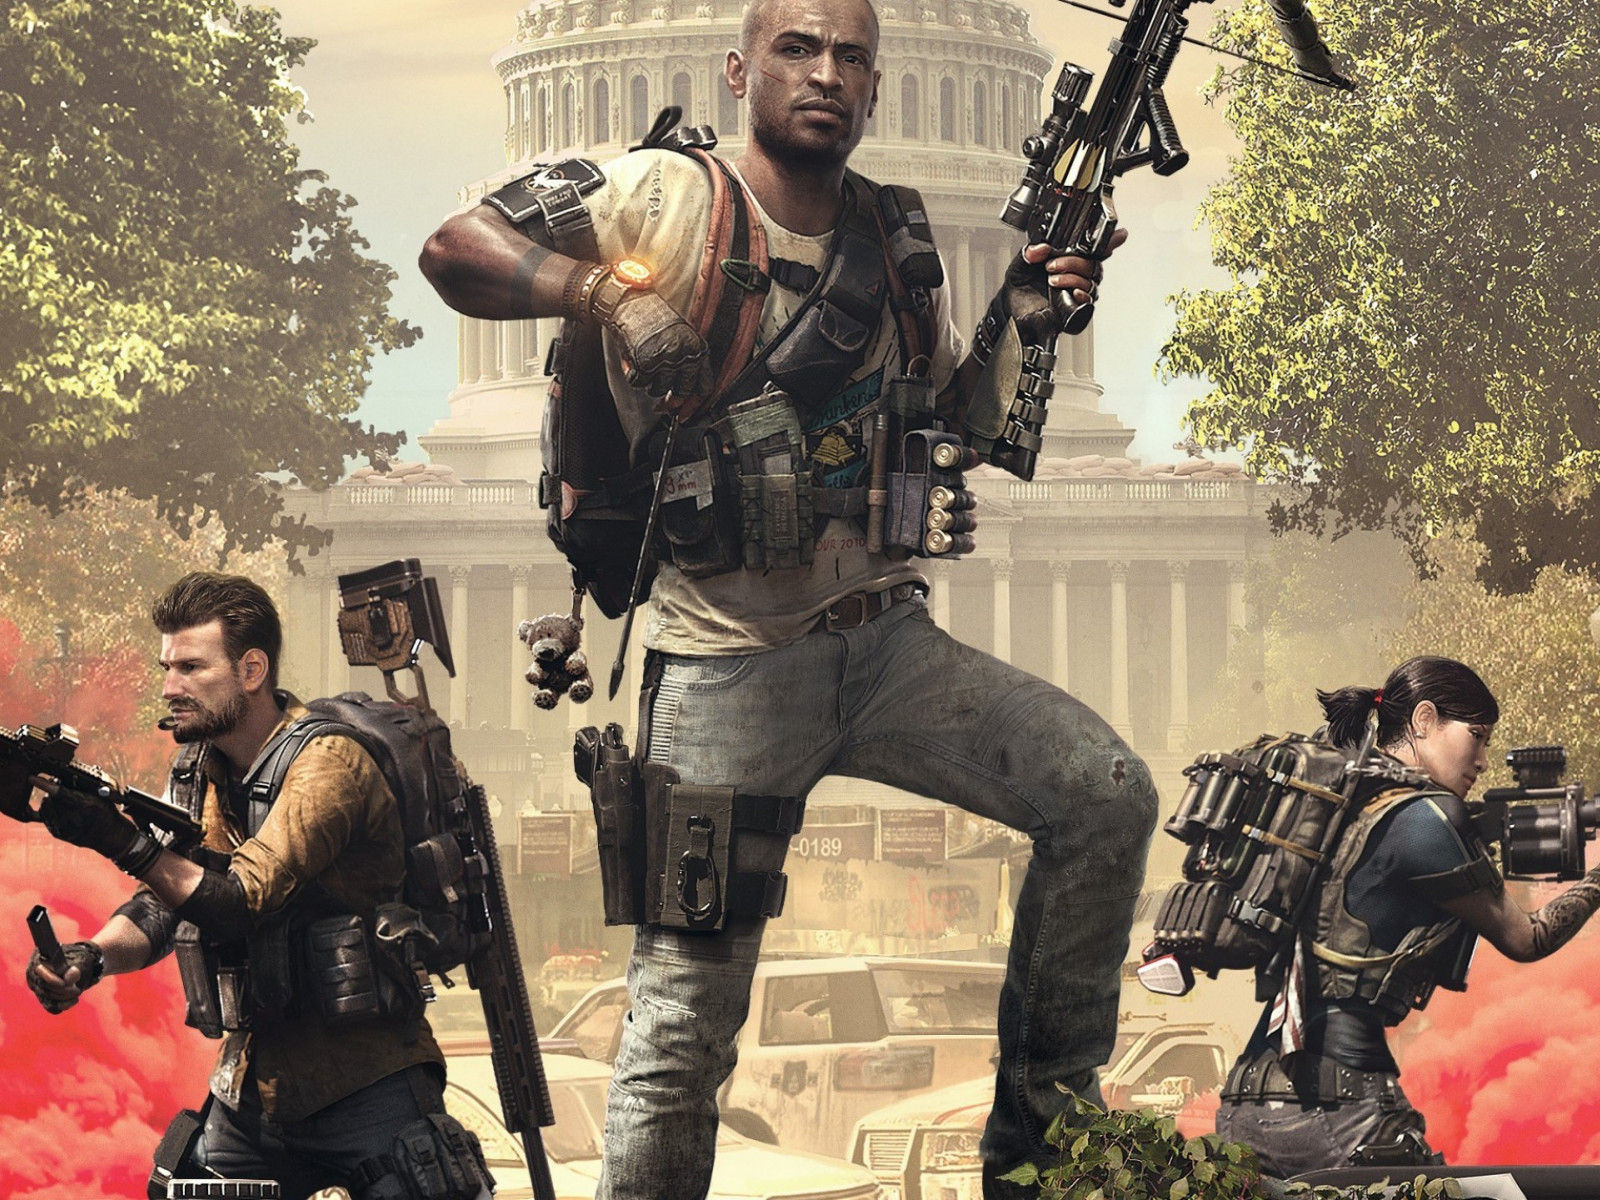 Tom Clancy's The Division 2 Episodes 2019 wallpaper 1600x1200